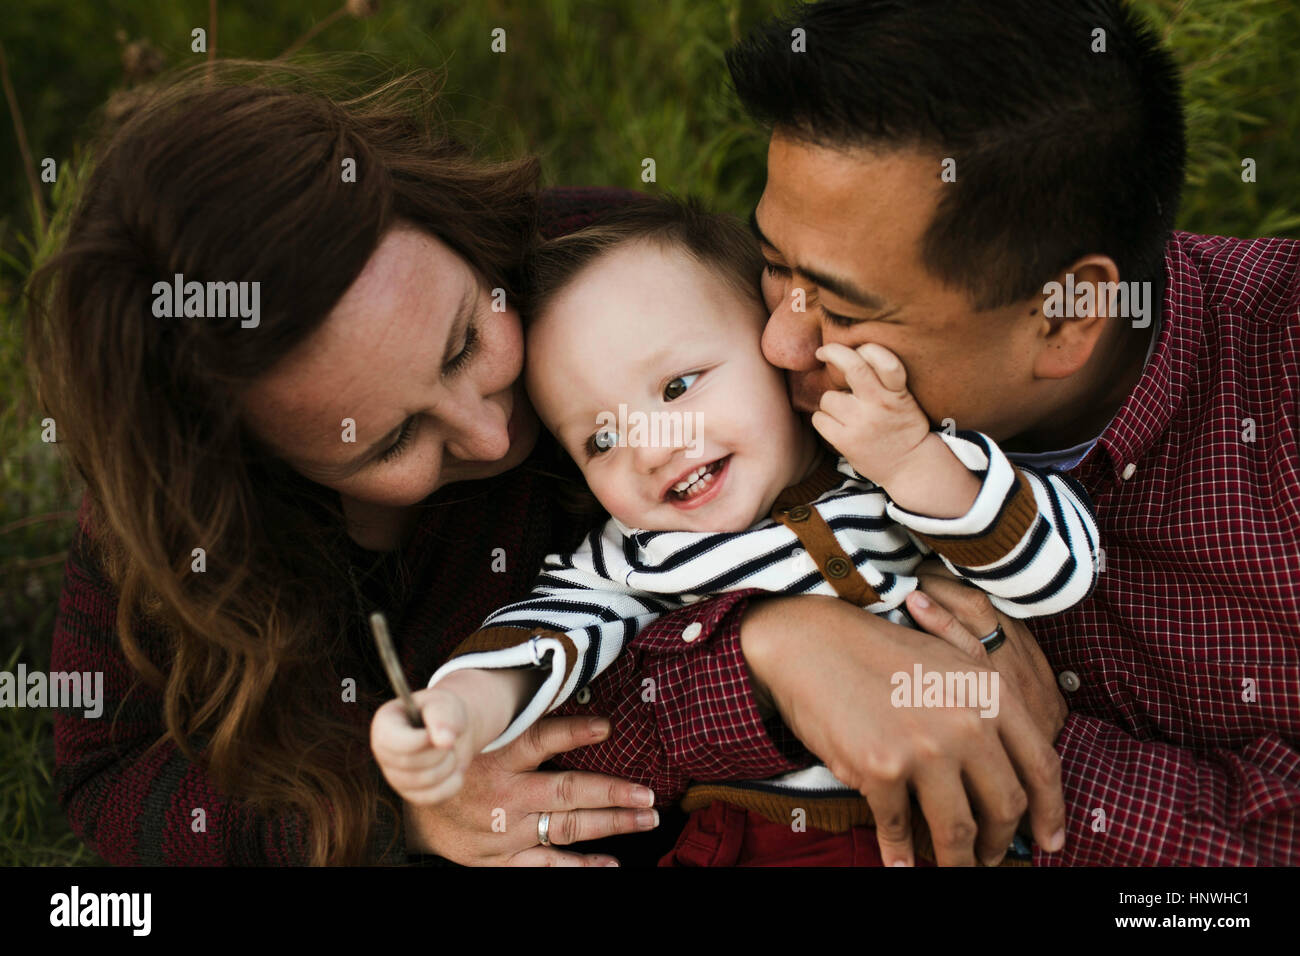 Mother and father hugging smiling baby boy - Stock Image